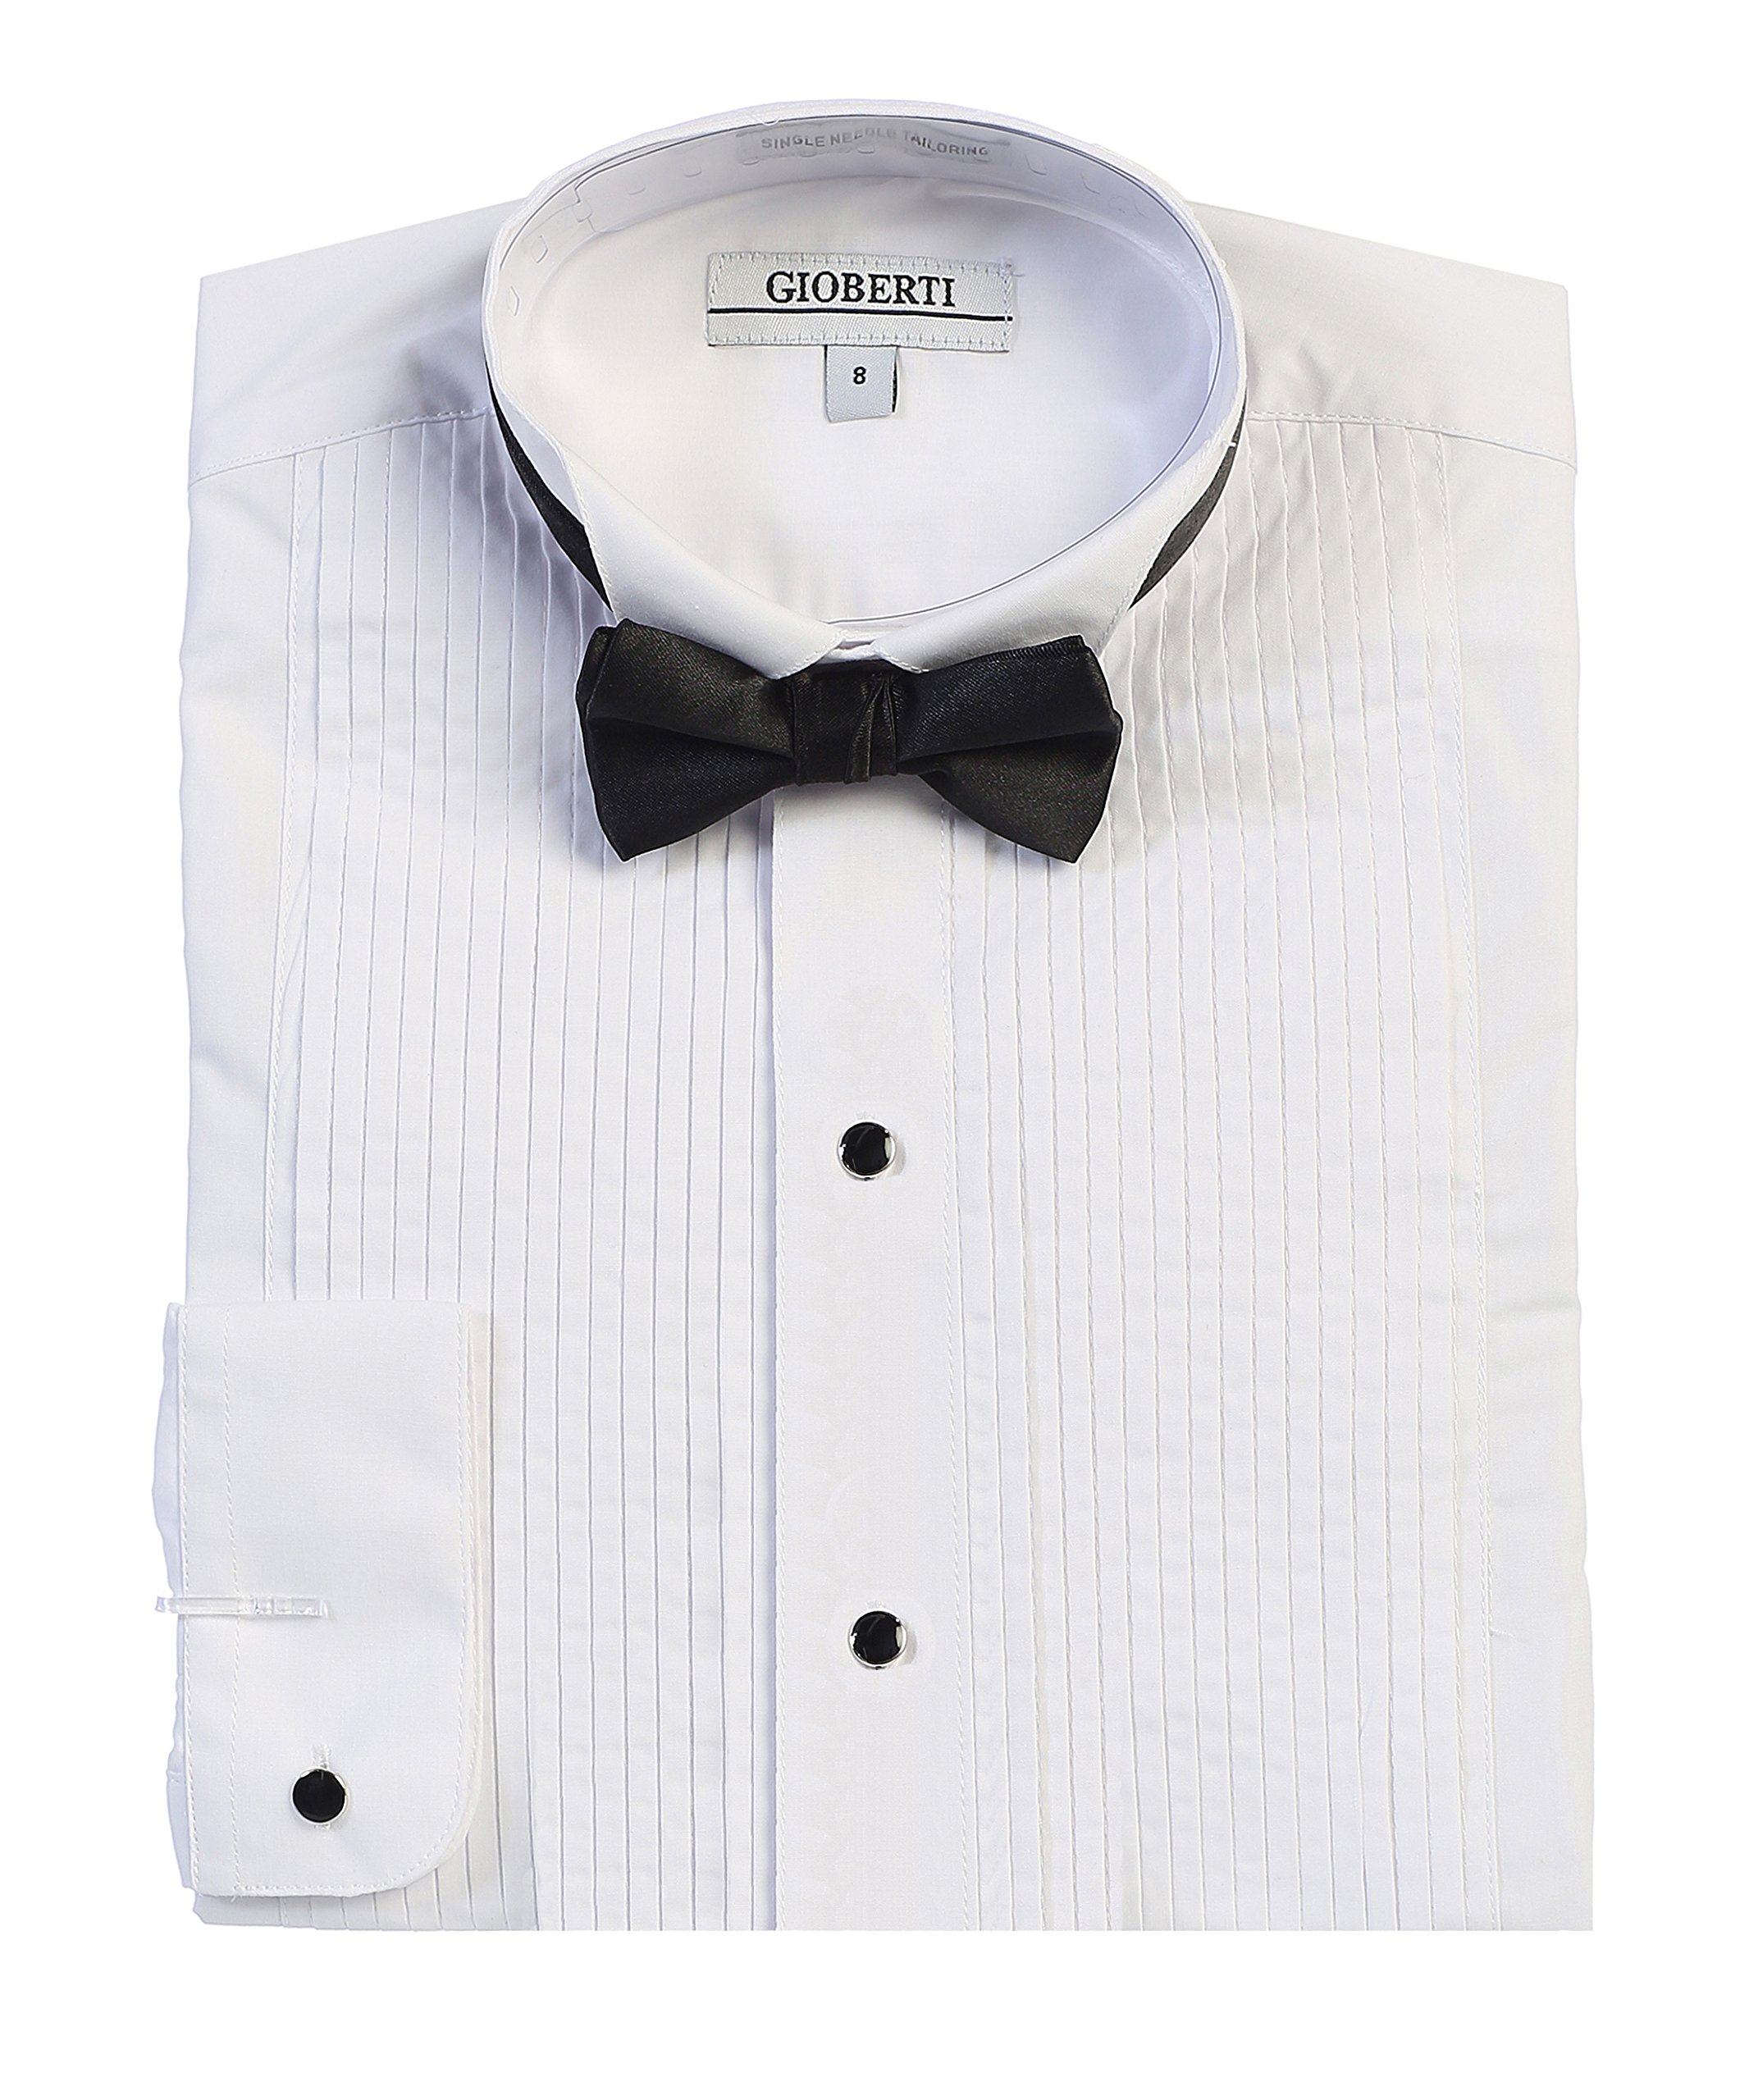 Gioberti Boy's Wing Tip Collar Tuxedo Dress Shirt with Bow Tie, White, Size 2T